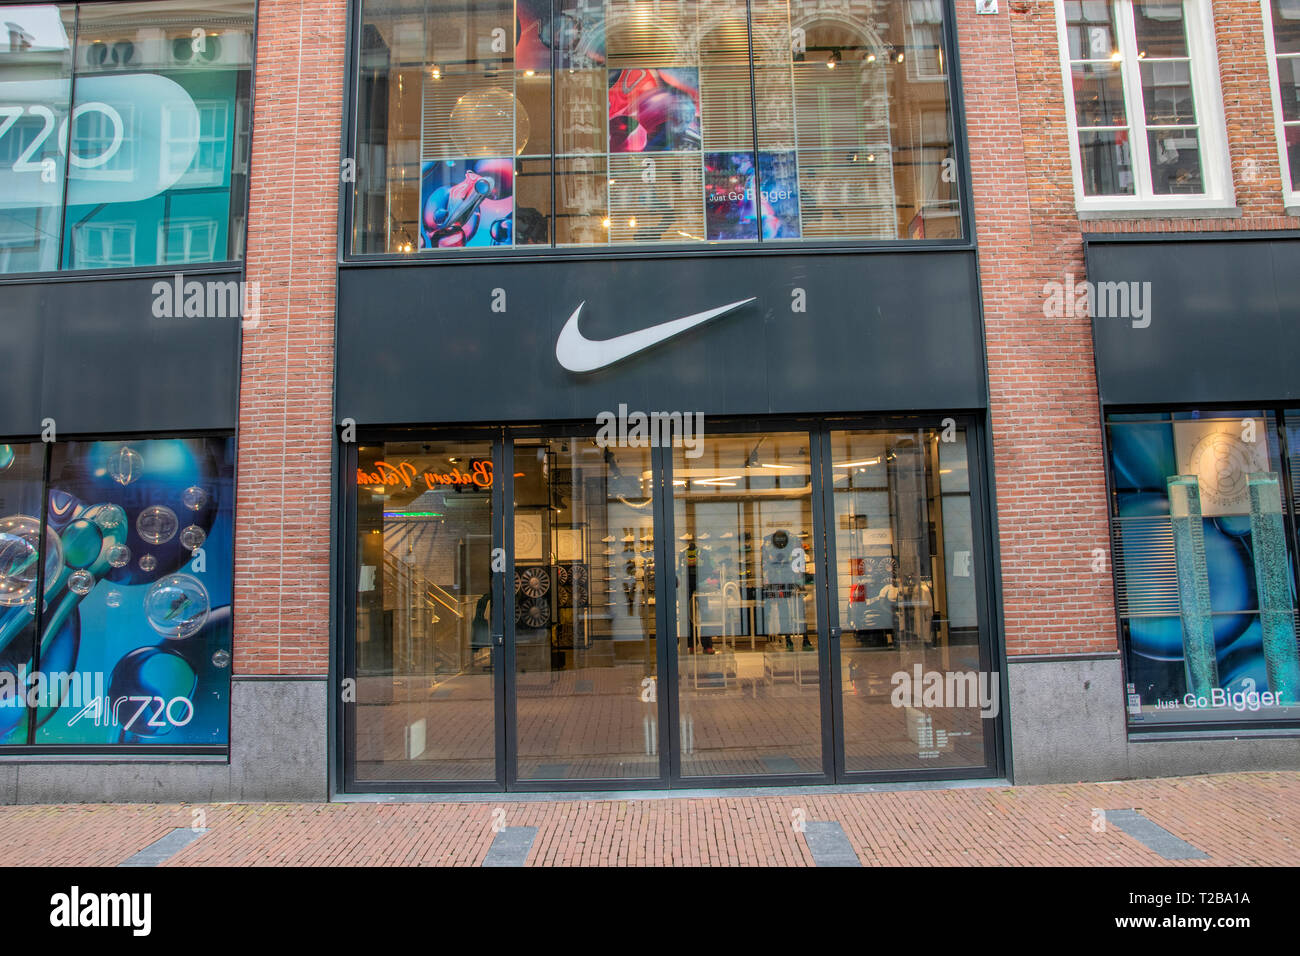 retroceder gobierno Campeonato  Nike Store At The Kalverstraat Amsterdam The Netherlands 2019 Stock Photo -  Alamy